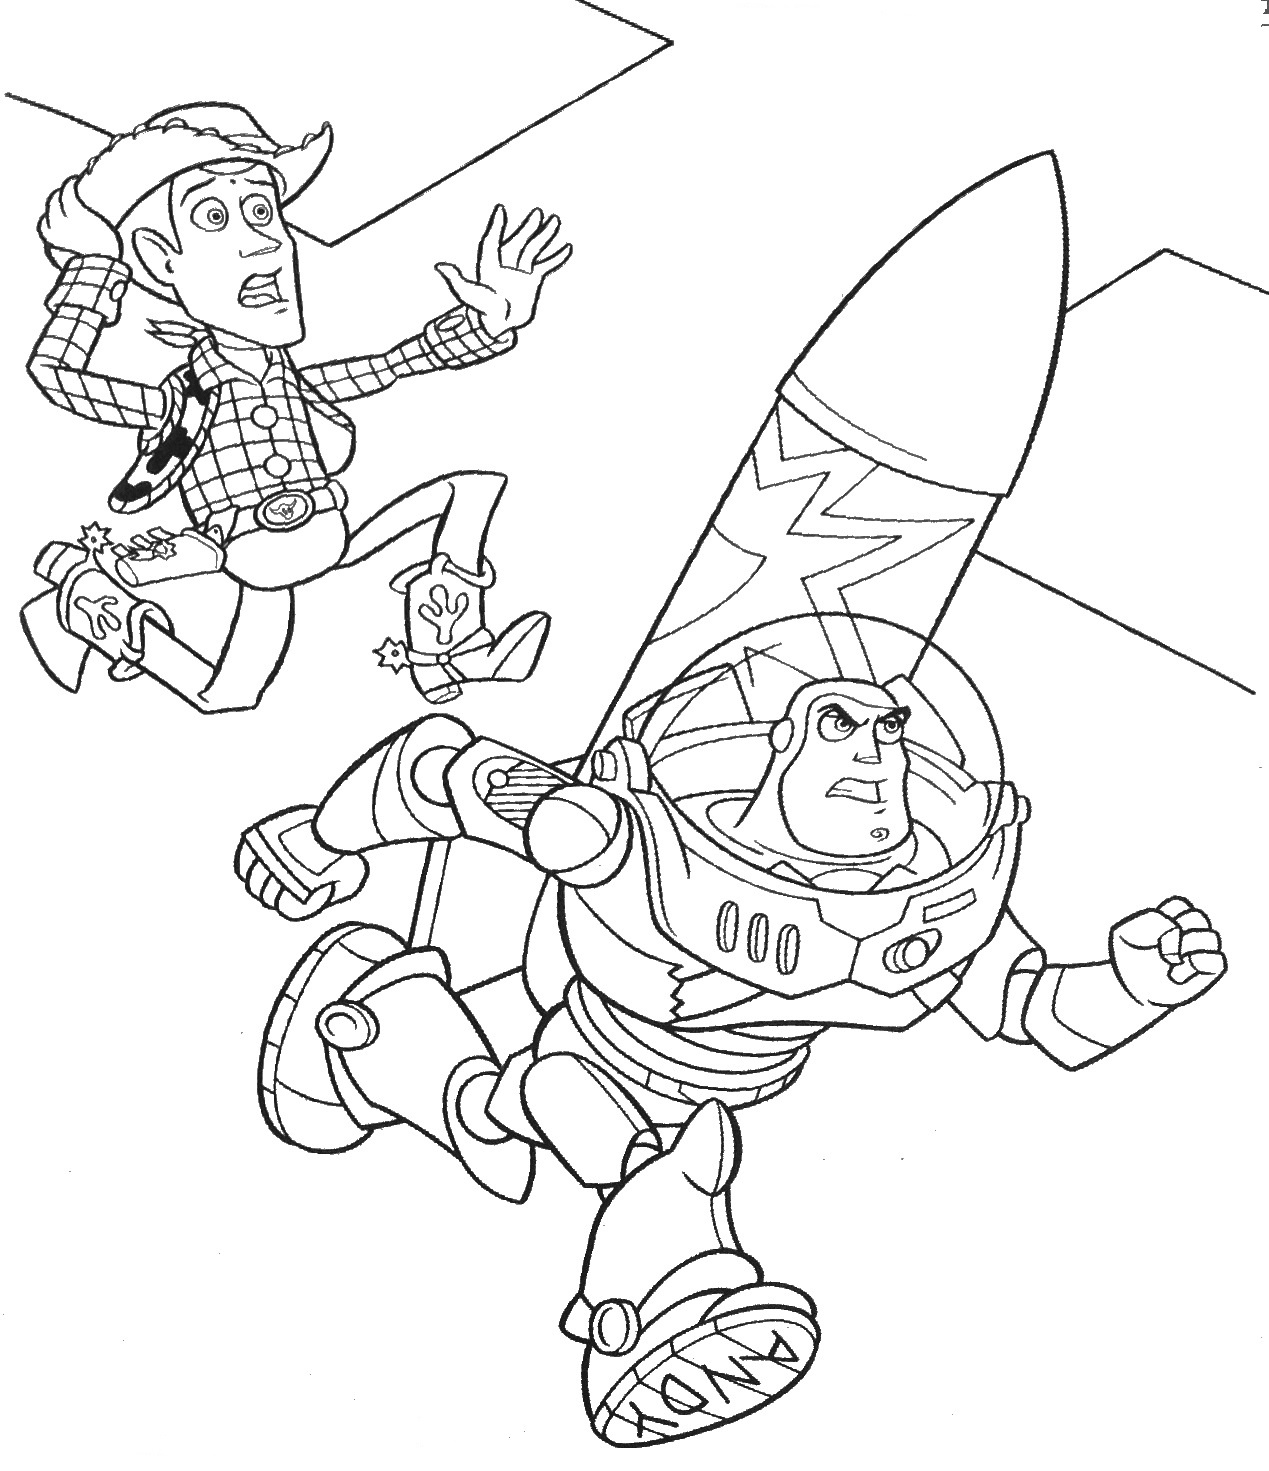 buzz toy story 4 coloring pages toy story christmas coloring pages at getcoloringscom pages story 4 coloring buzz toy